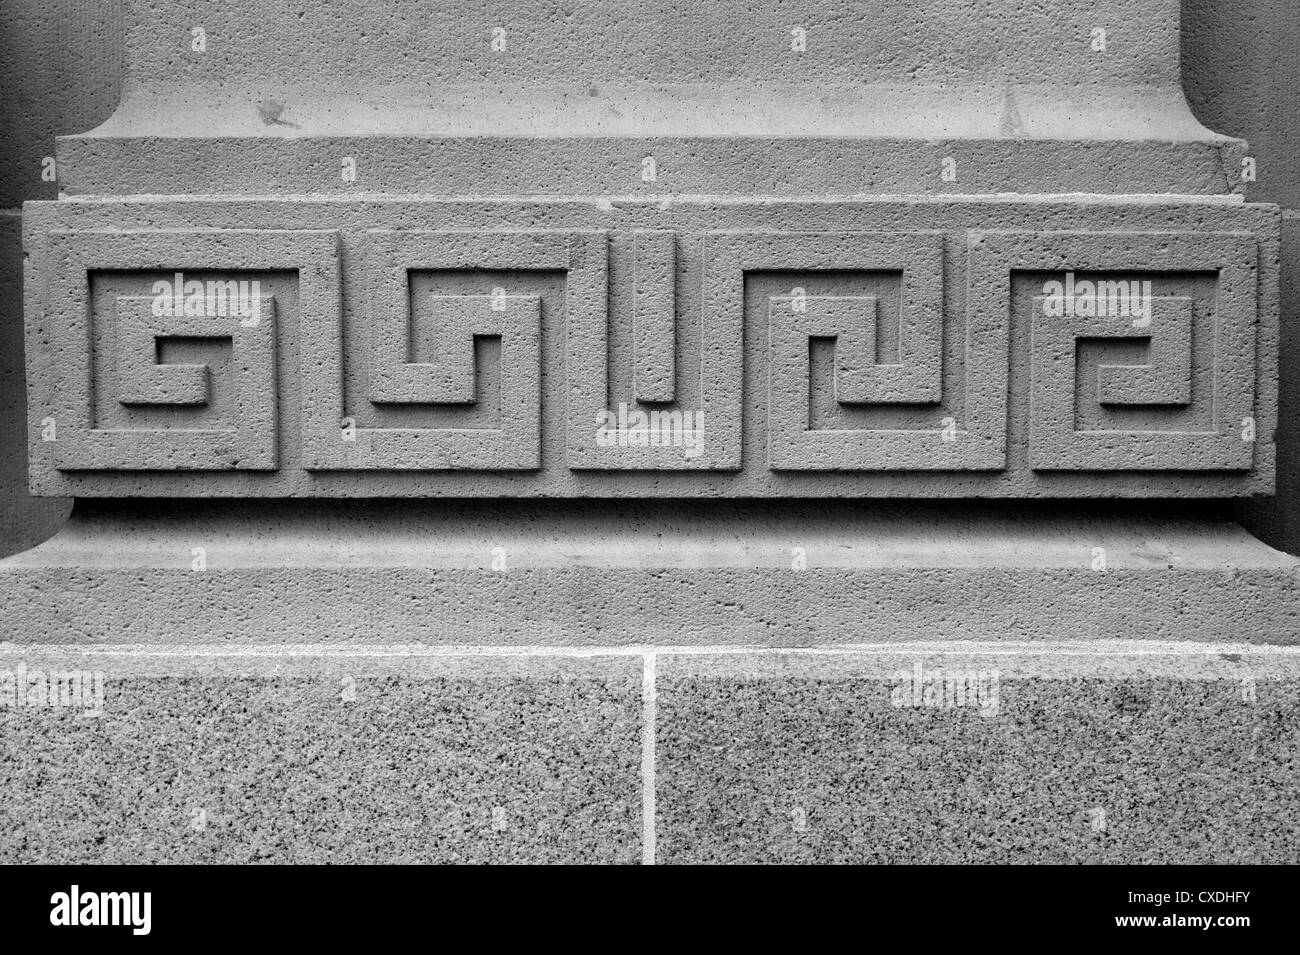 Symmetrical geometric design on the facade of a stone building in Vancouver, BC, Canada - Stock Image